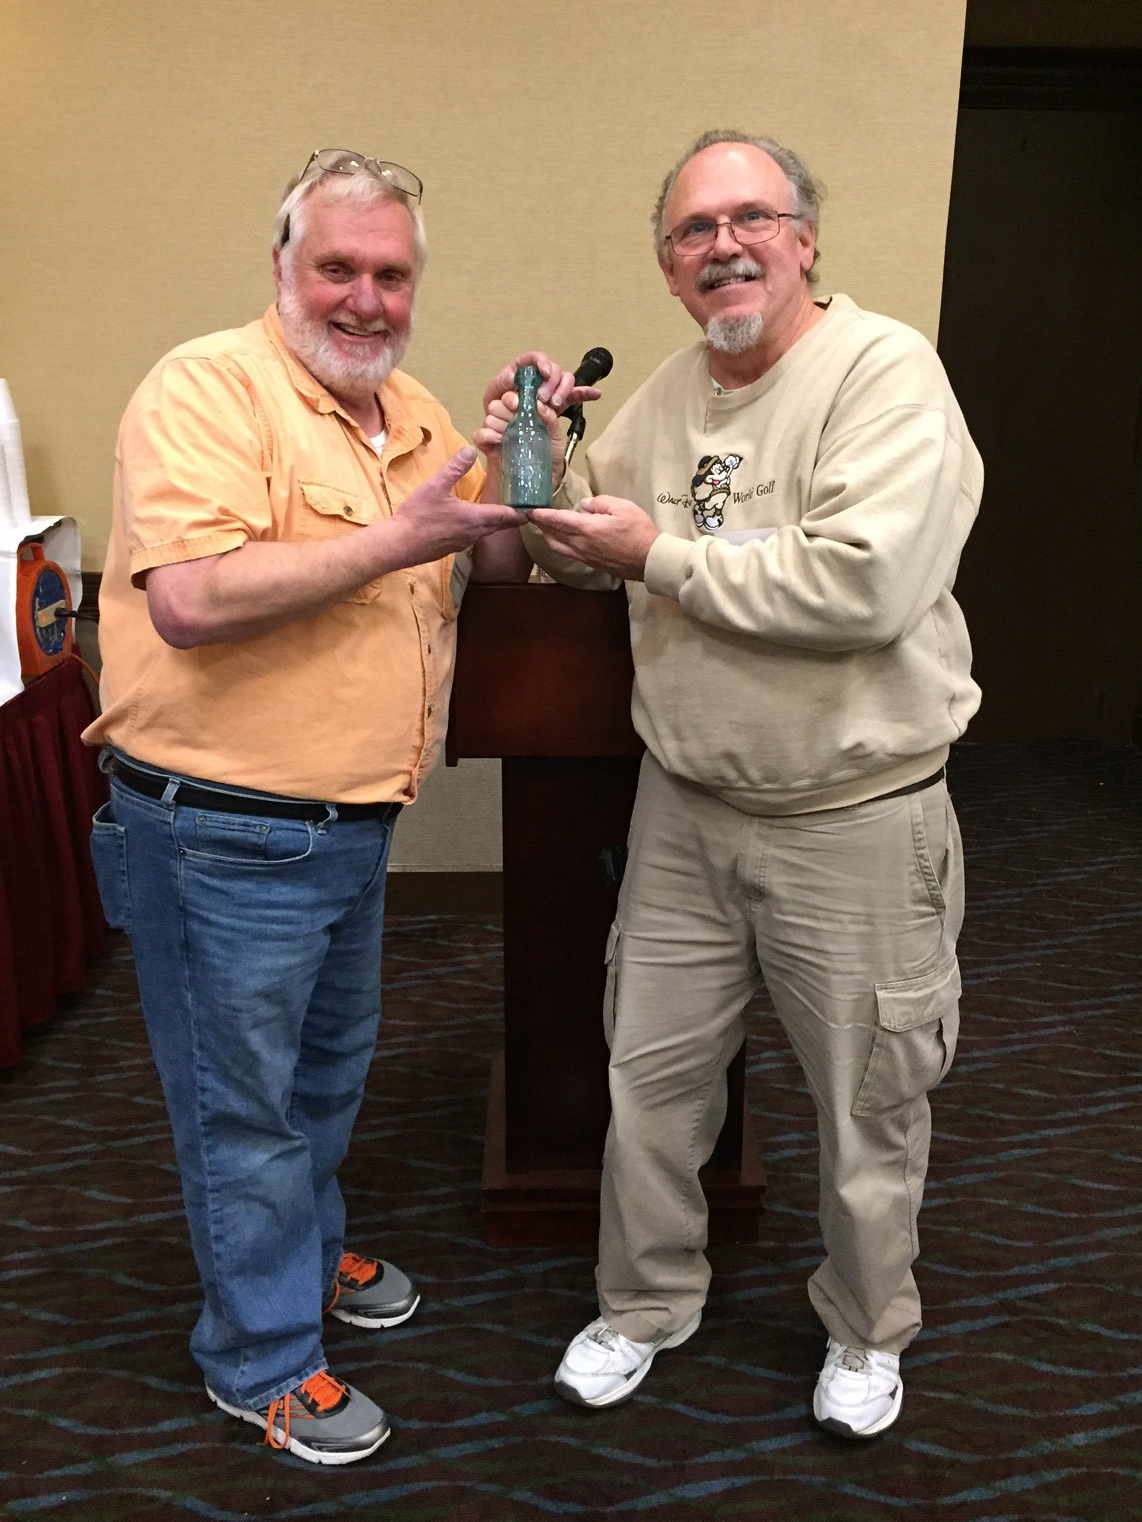 Raffle Ticket chair Richard Matthies (right) giving Tom Majewski his prize for selling the most raffle tickets.